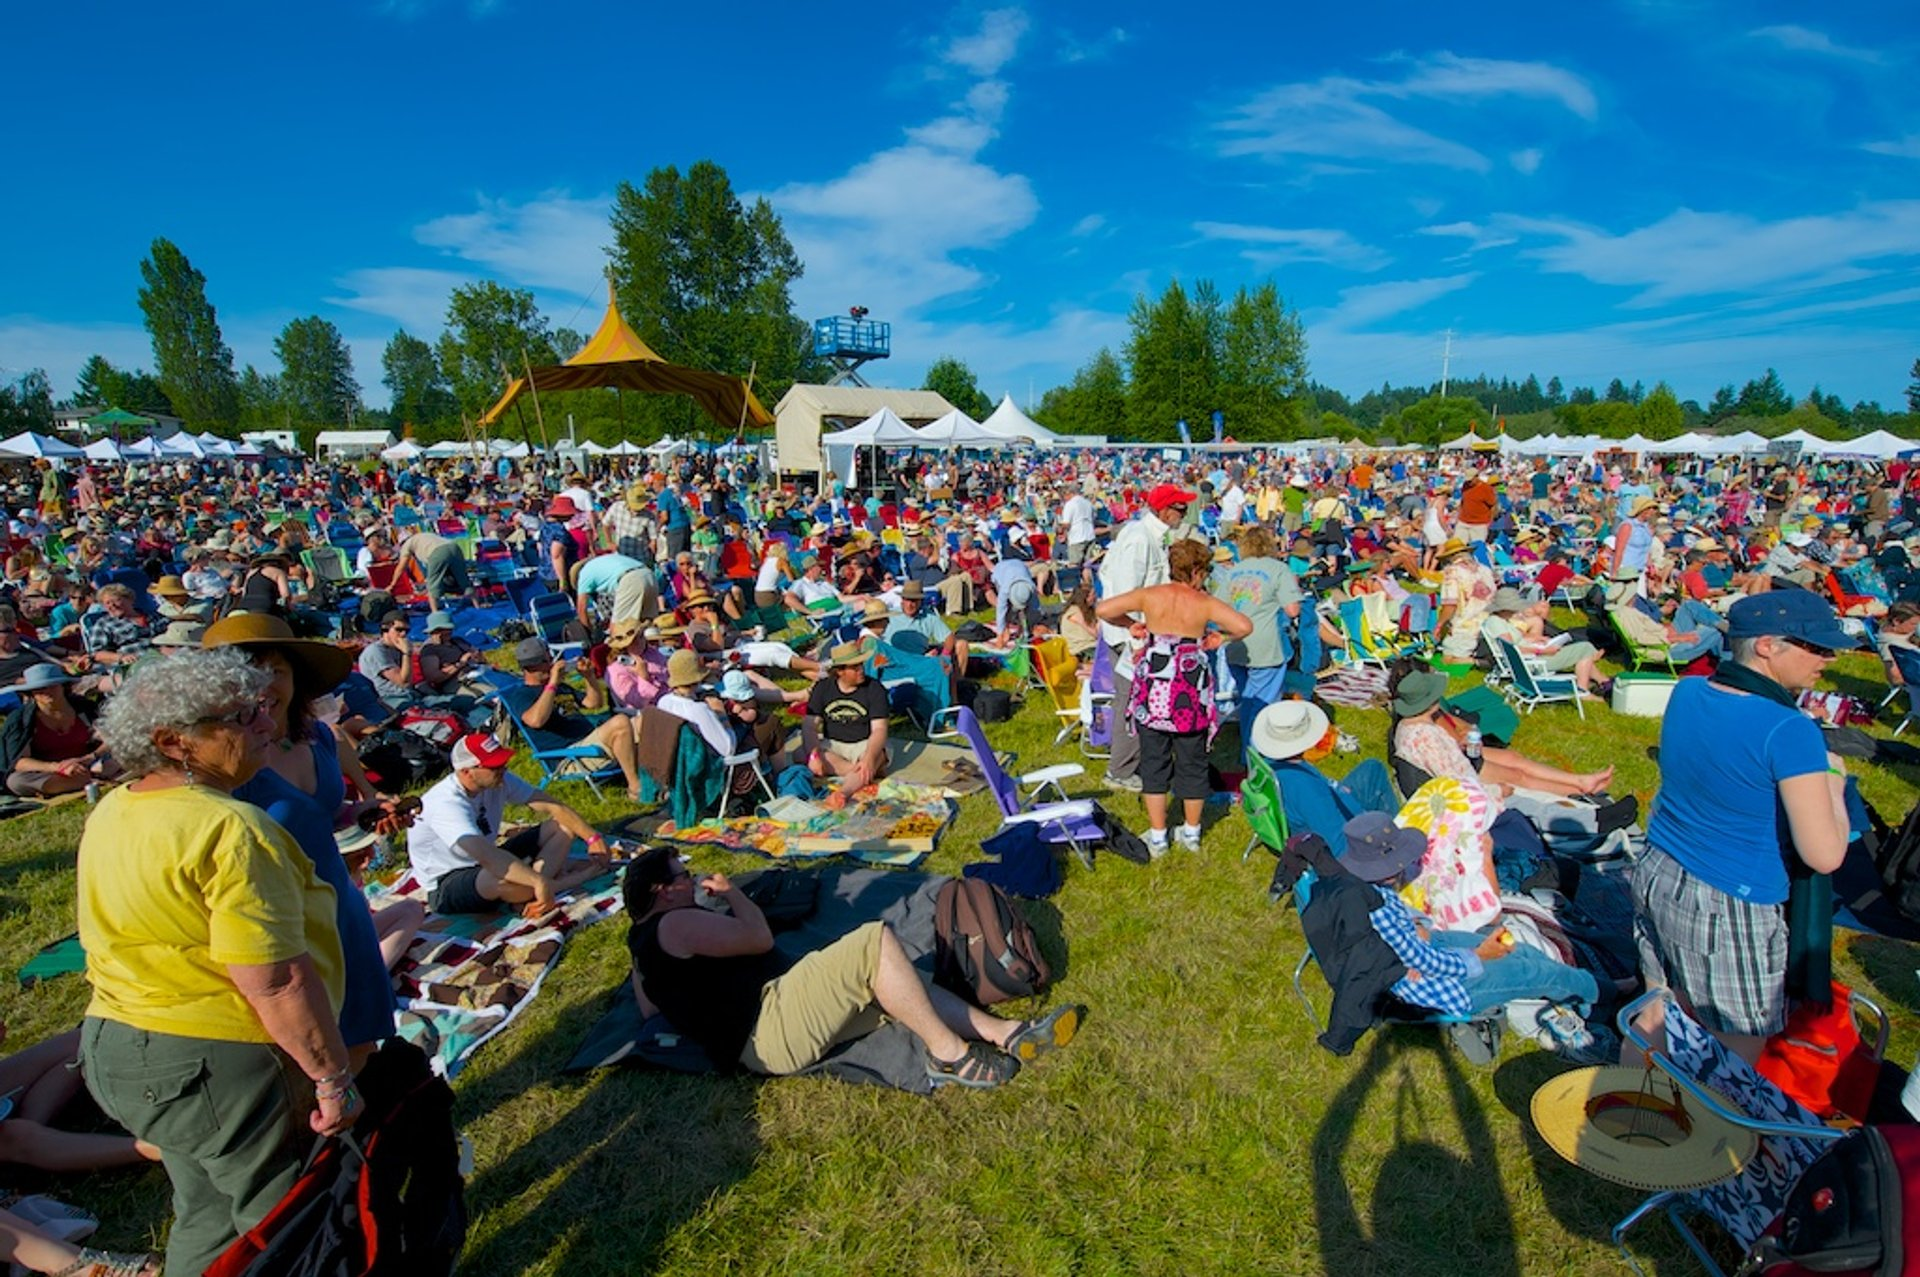 Vancouver Island Musicfest in British Columbia 2019 - Best Time